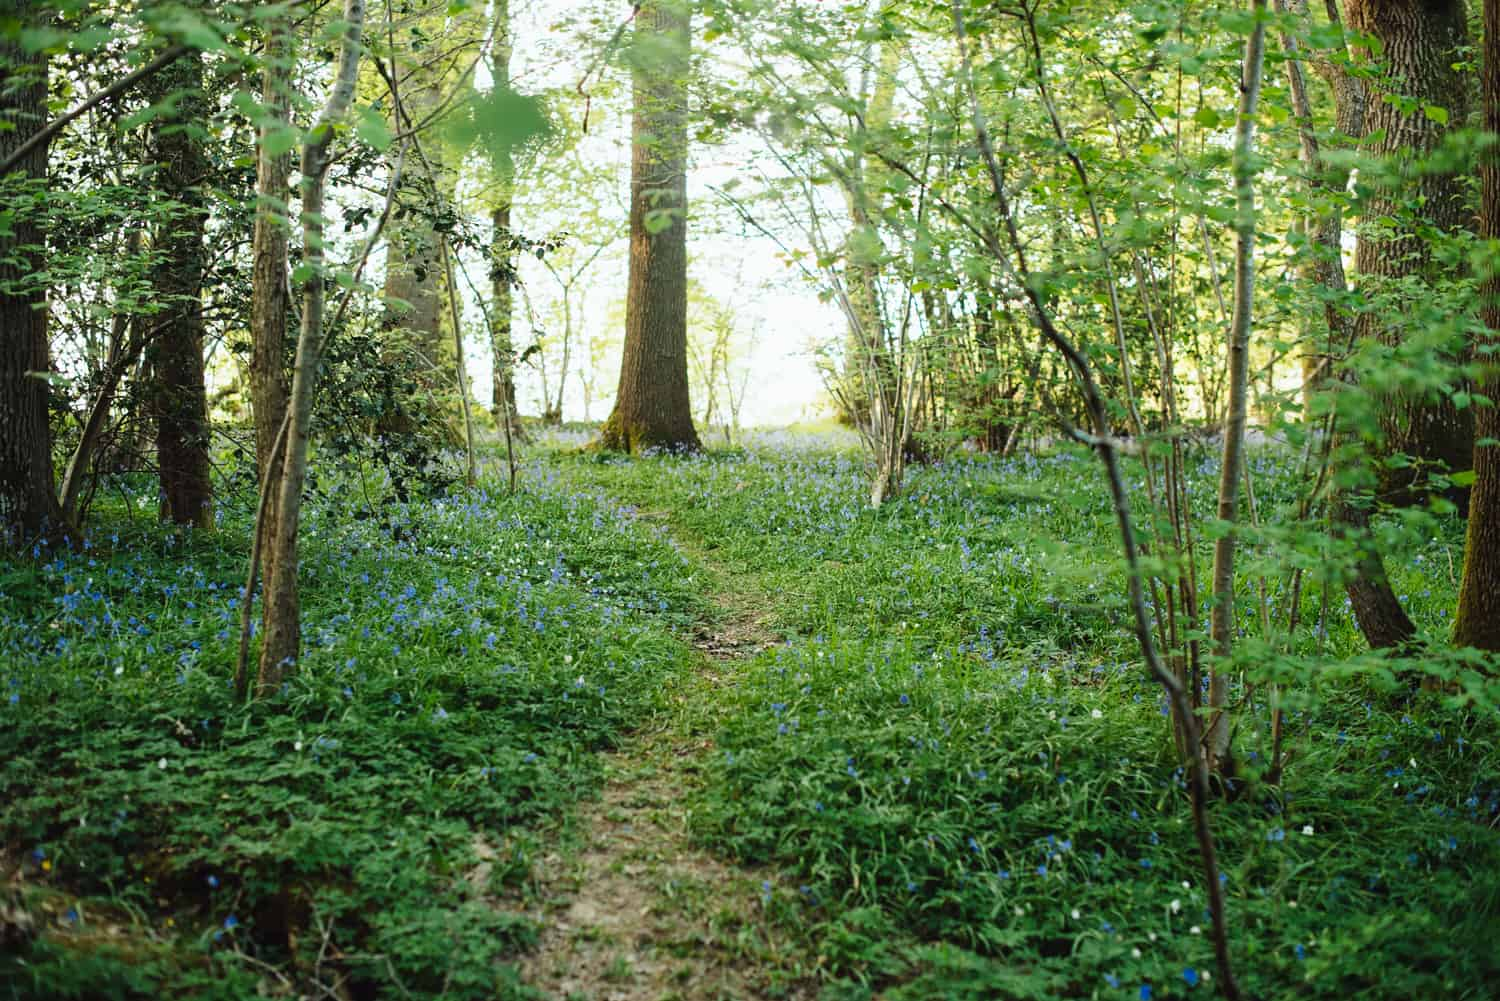 Billingshurst Bluebell Walk